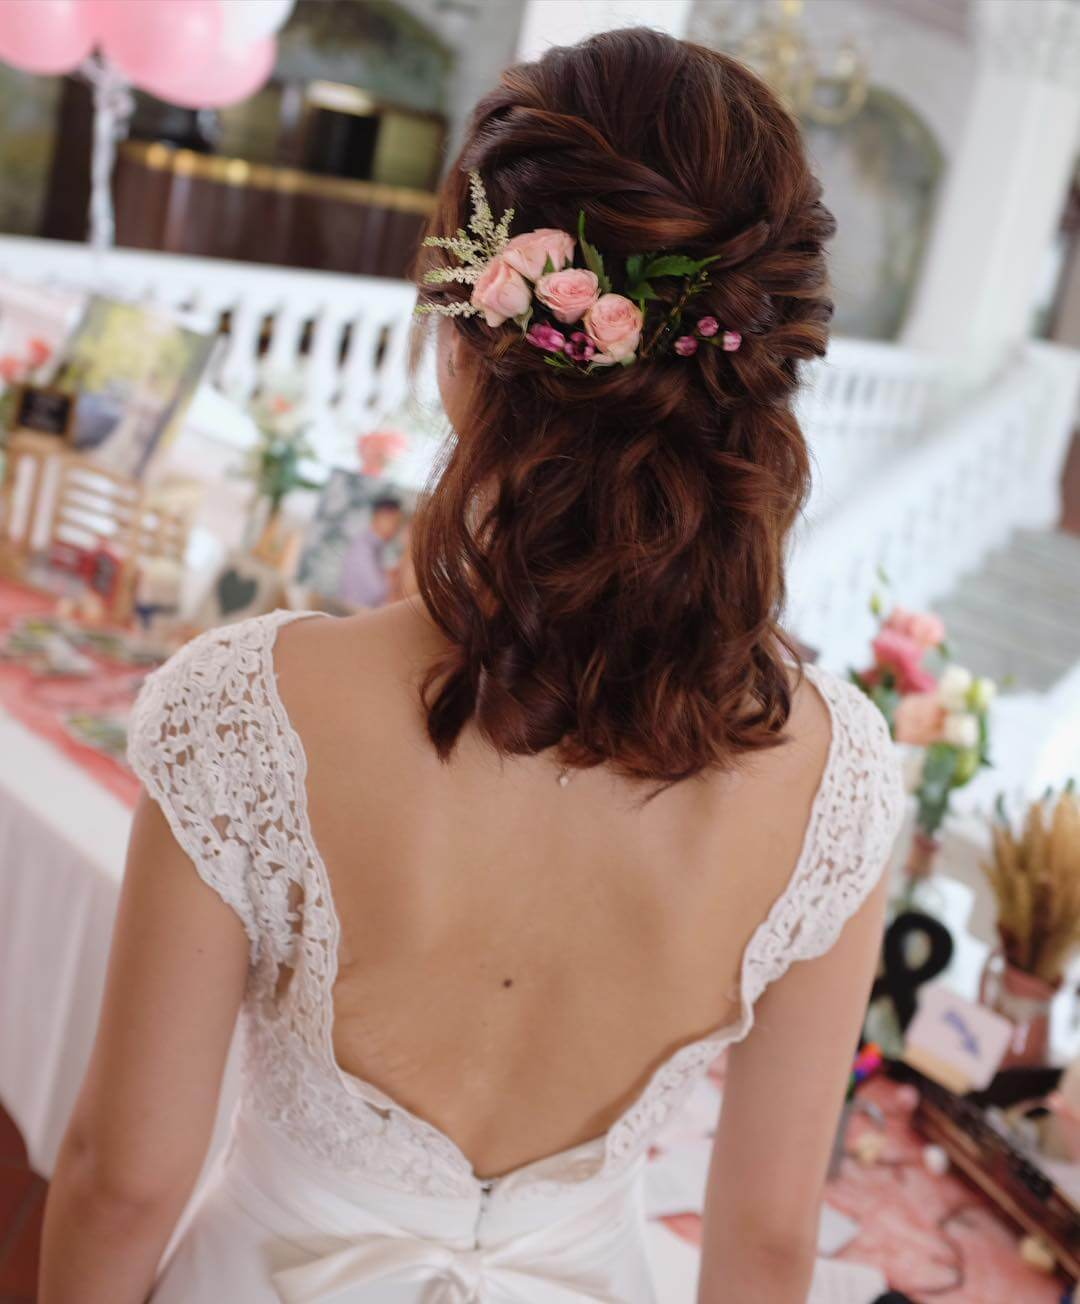 Curly Updo Hairstyles For Weddings: 25+ Curly Wedding Hairstyle Ideas, Designs